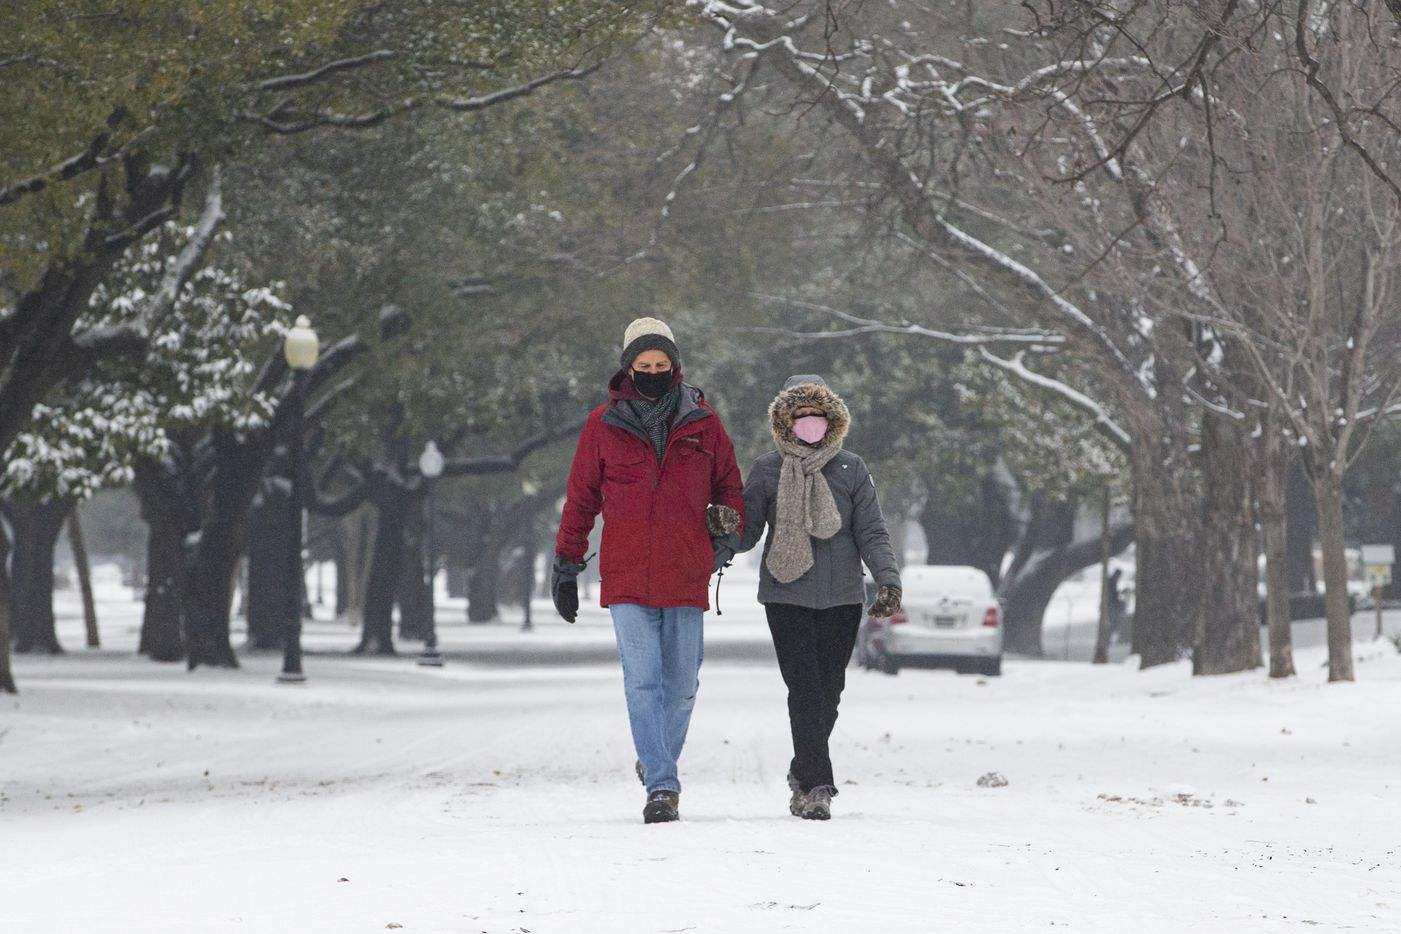 Jack Levison and Priscilla Pope-Levison take a stroll down Swiss Ave in Dallas on Wednesday, Feb. 17, 2021.